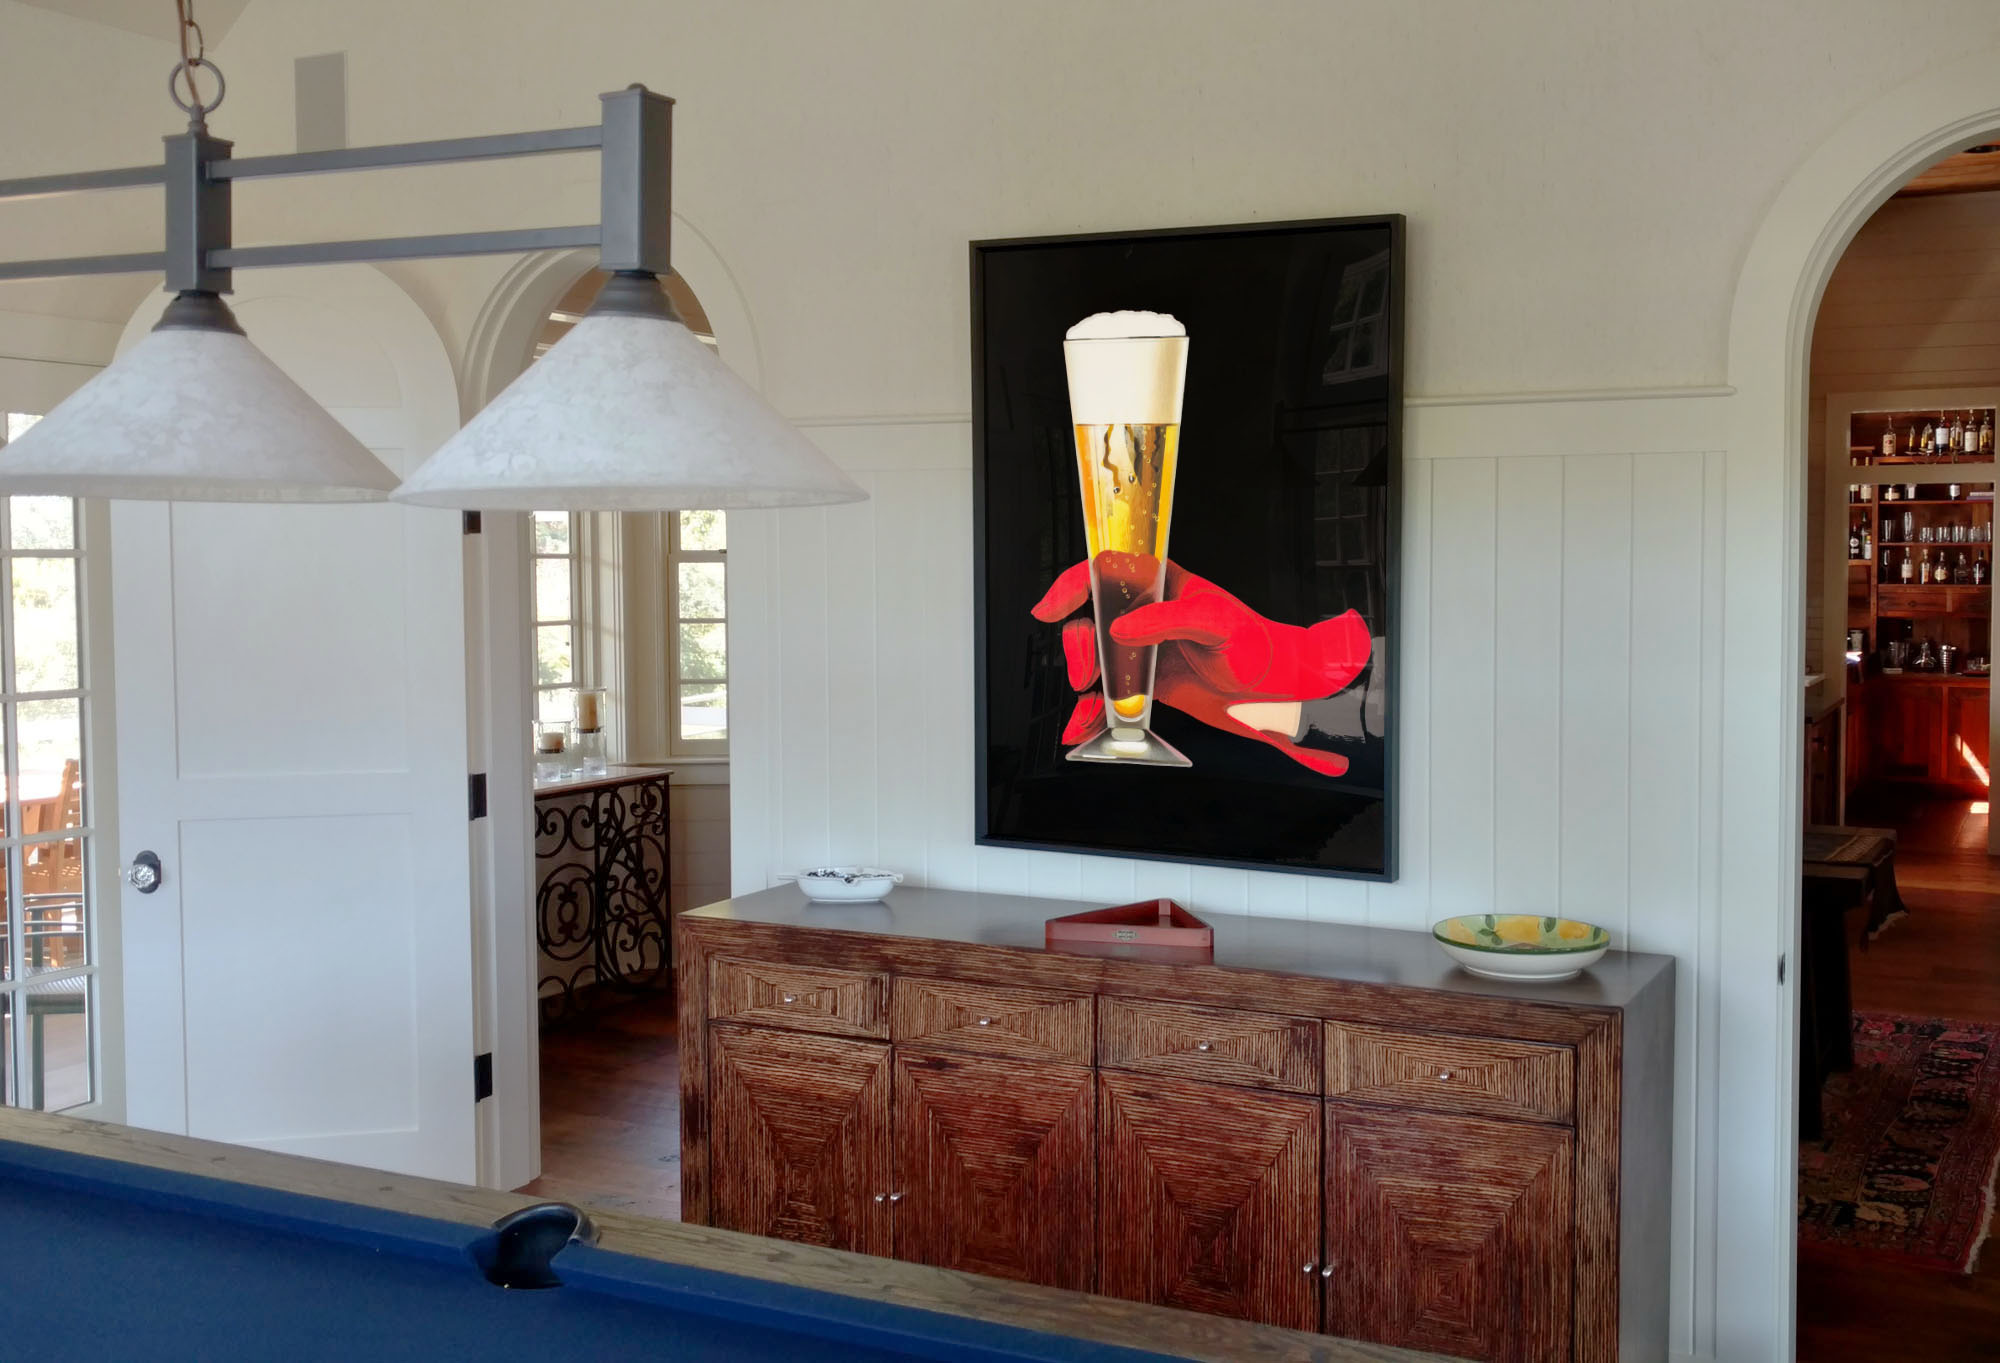 Dramatic beer poster in gloved hand in billiards room; brown, blue, red, white